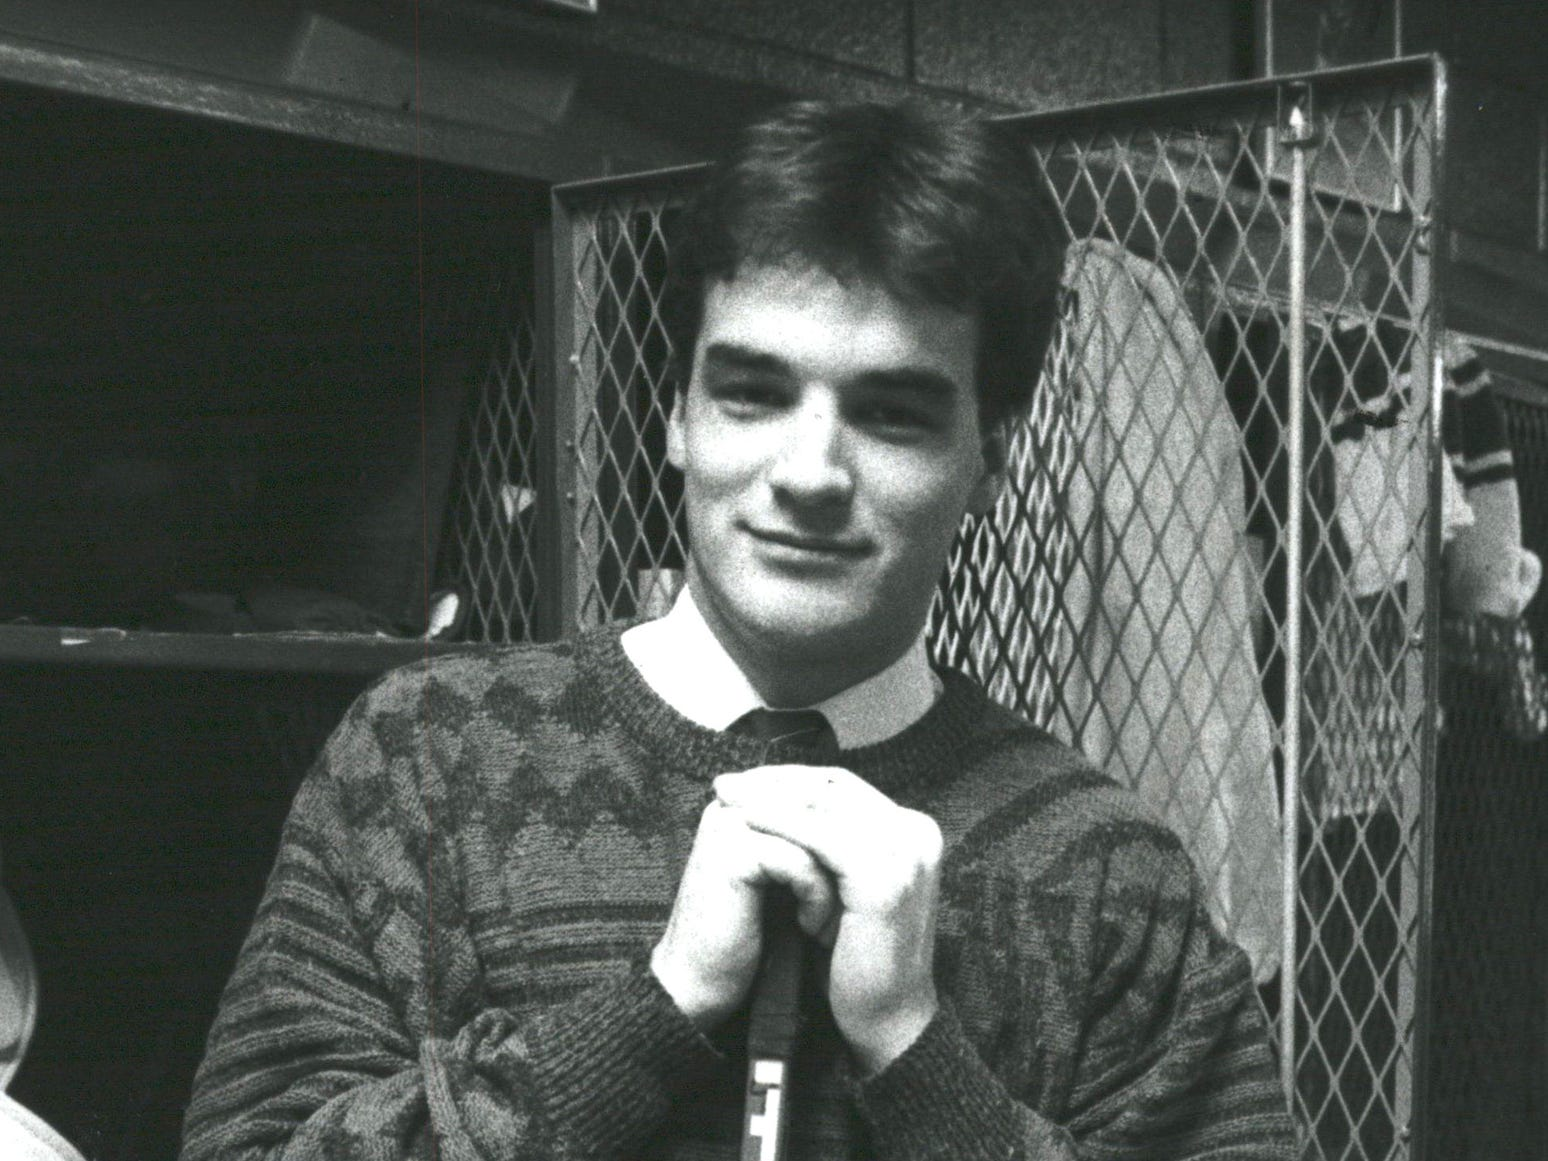 Joe Murphy starred at Michigan State before being picked No. 1 overall in 1986 by the Red Wings.